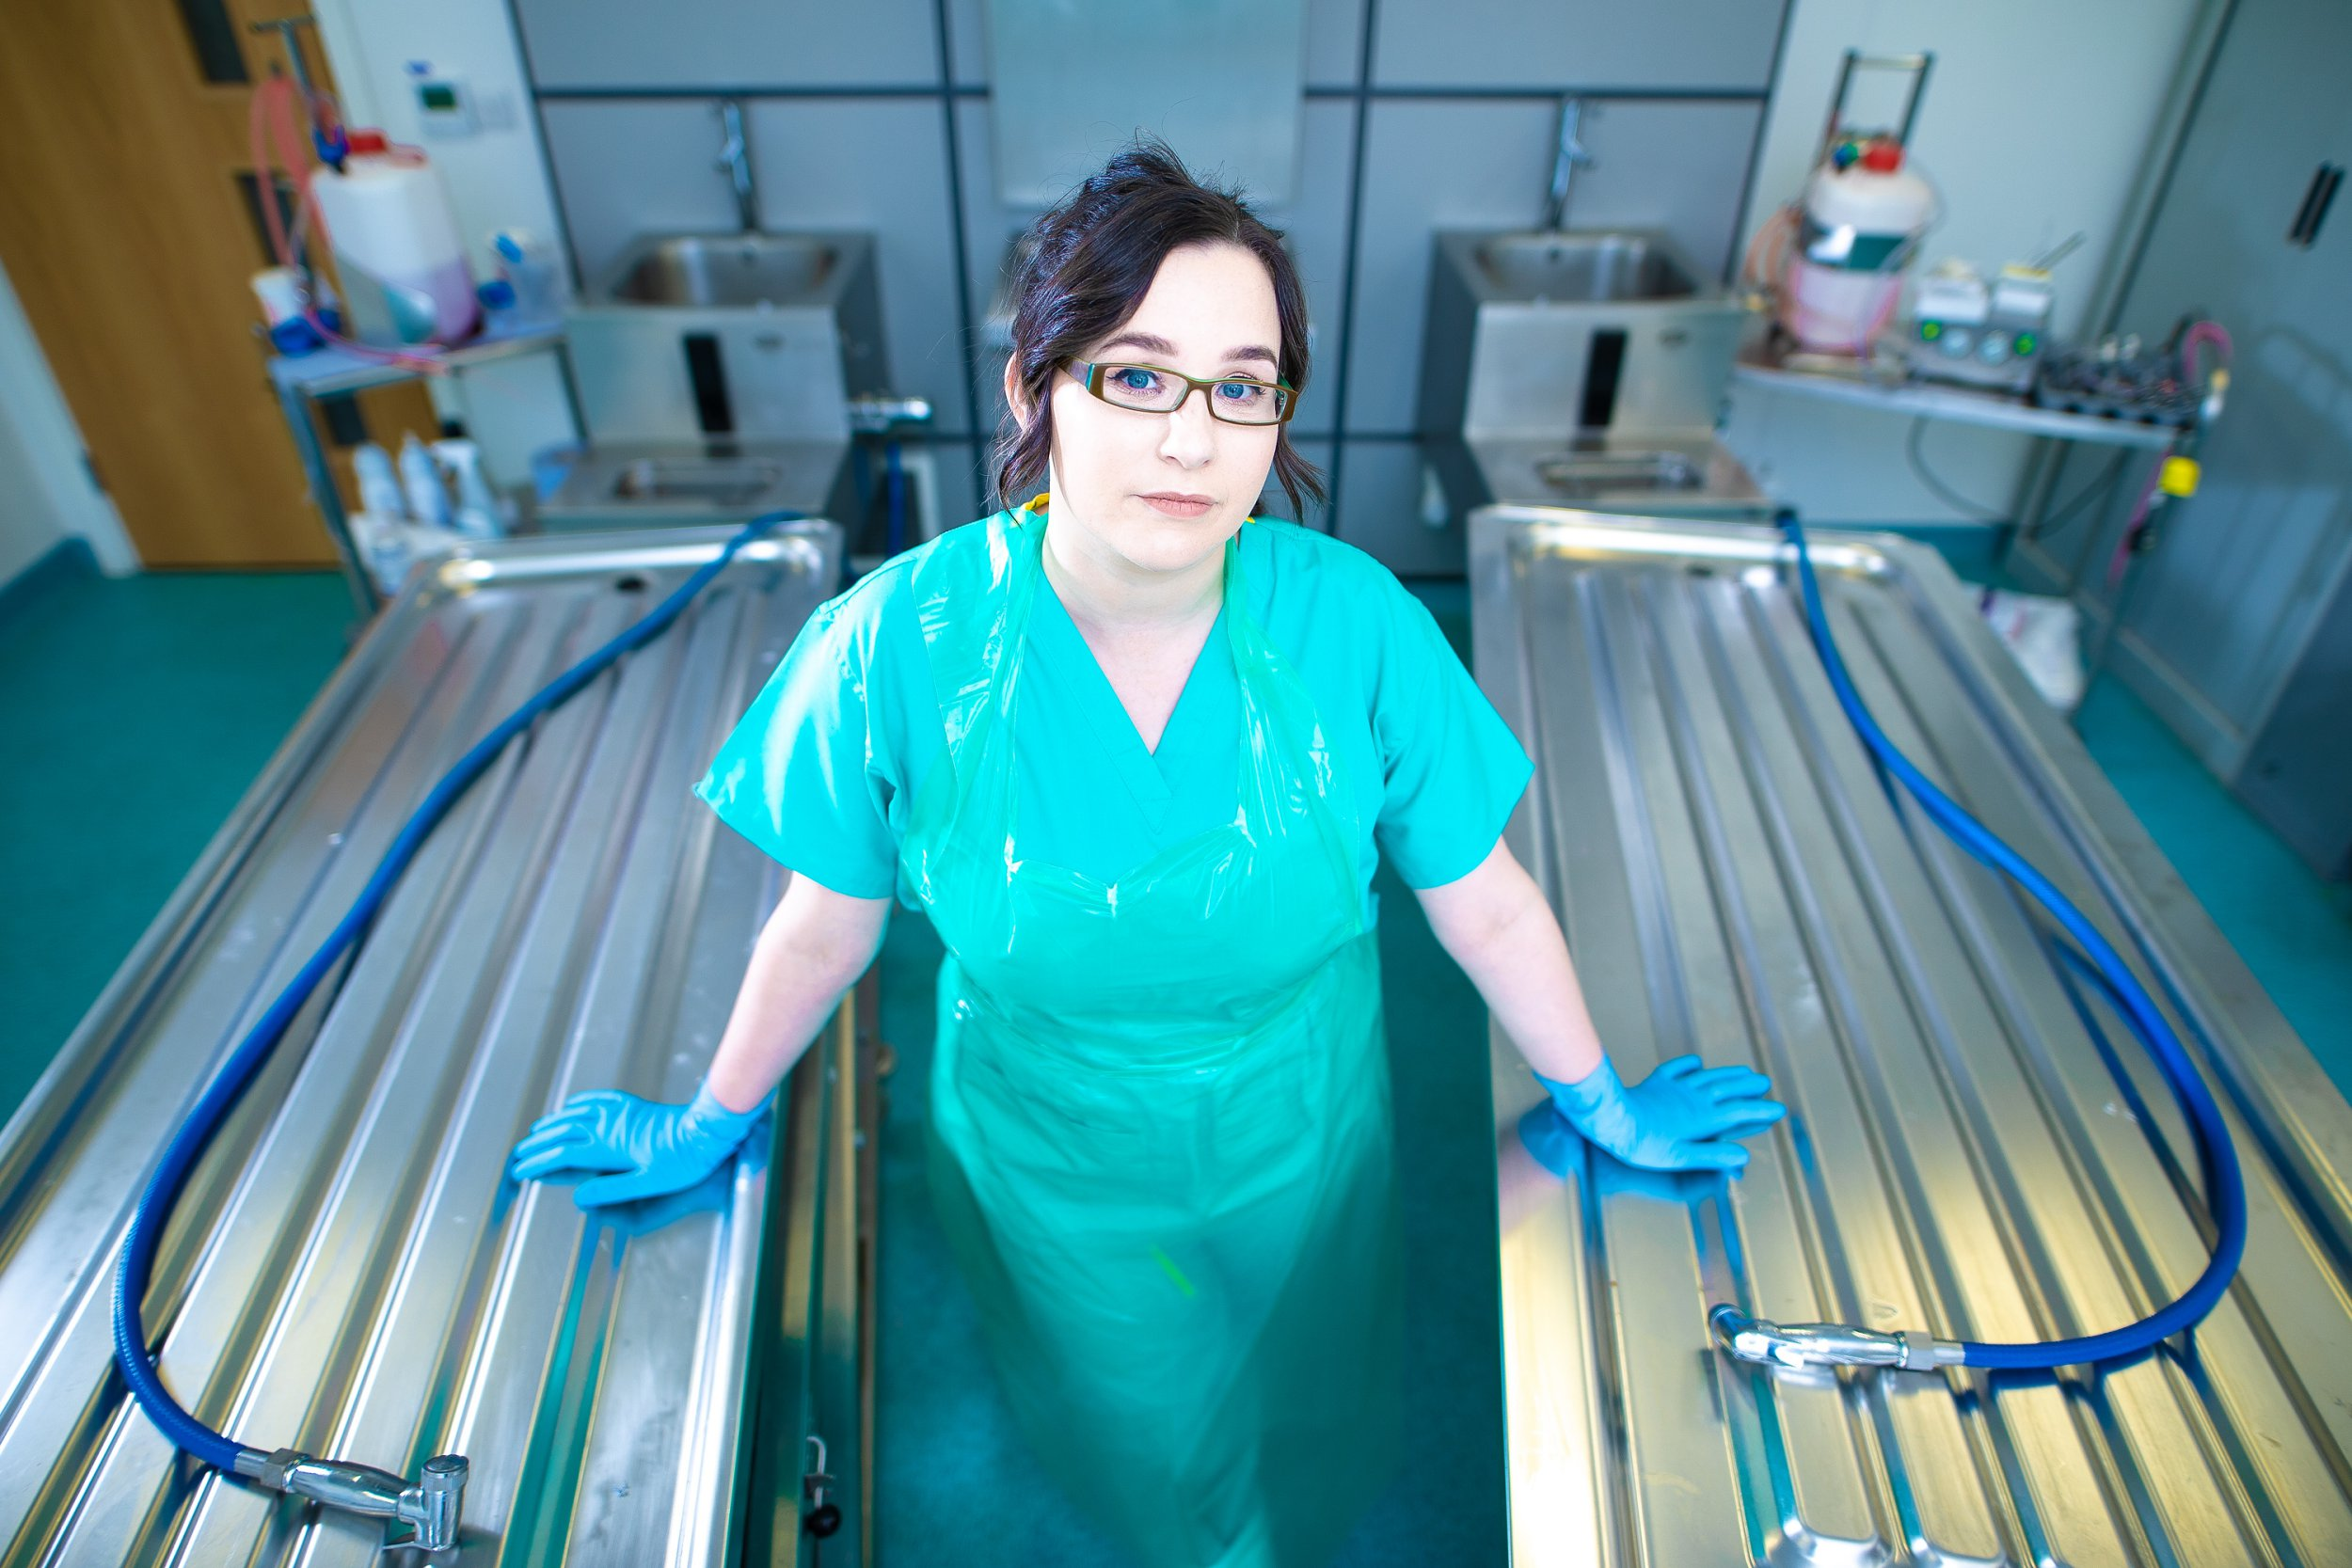 My Odd Job: Embalming bodies is a privilege for me, and a comfort to grieving families